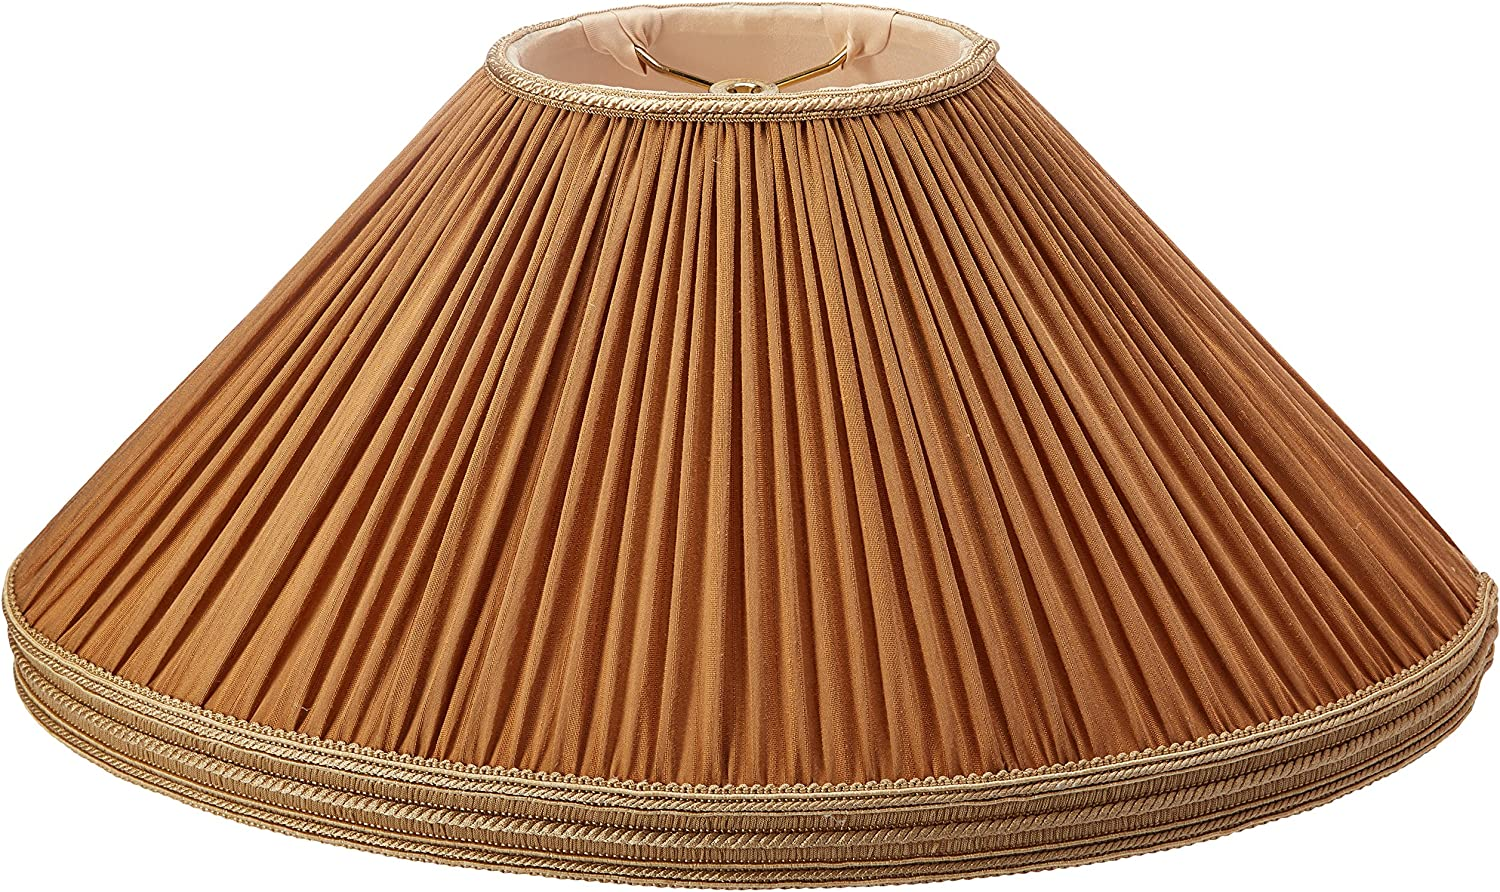 Royal Fort Worth Mall Designs Brown Pleated Oval Gallery Designer Lamp Shad with San Jose Mall